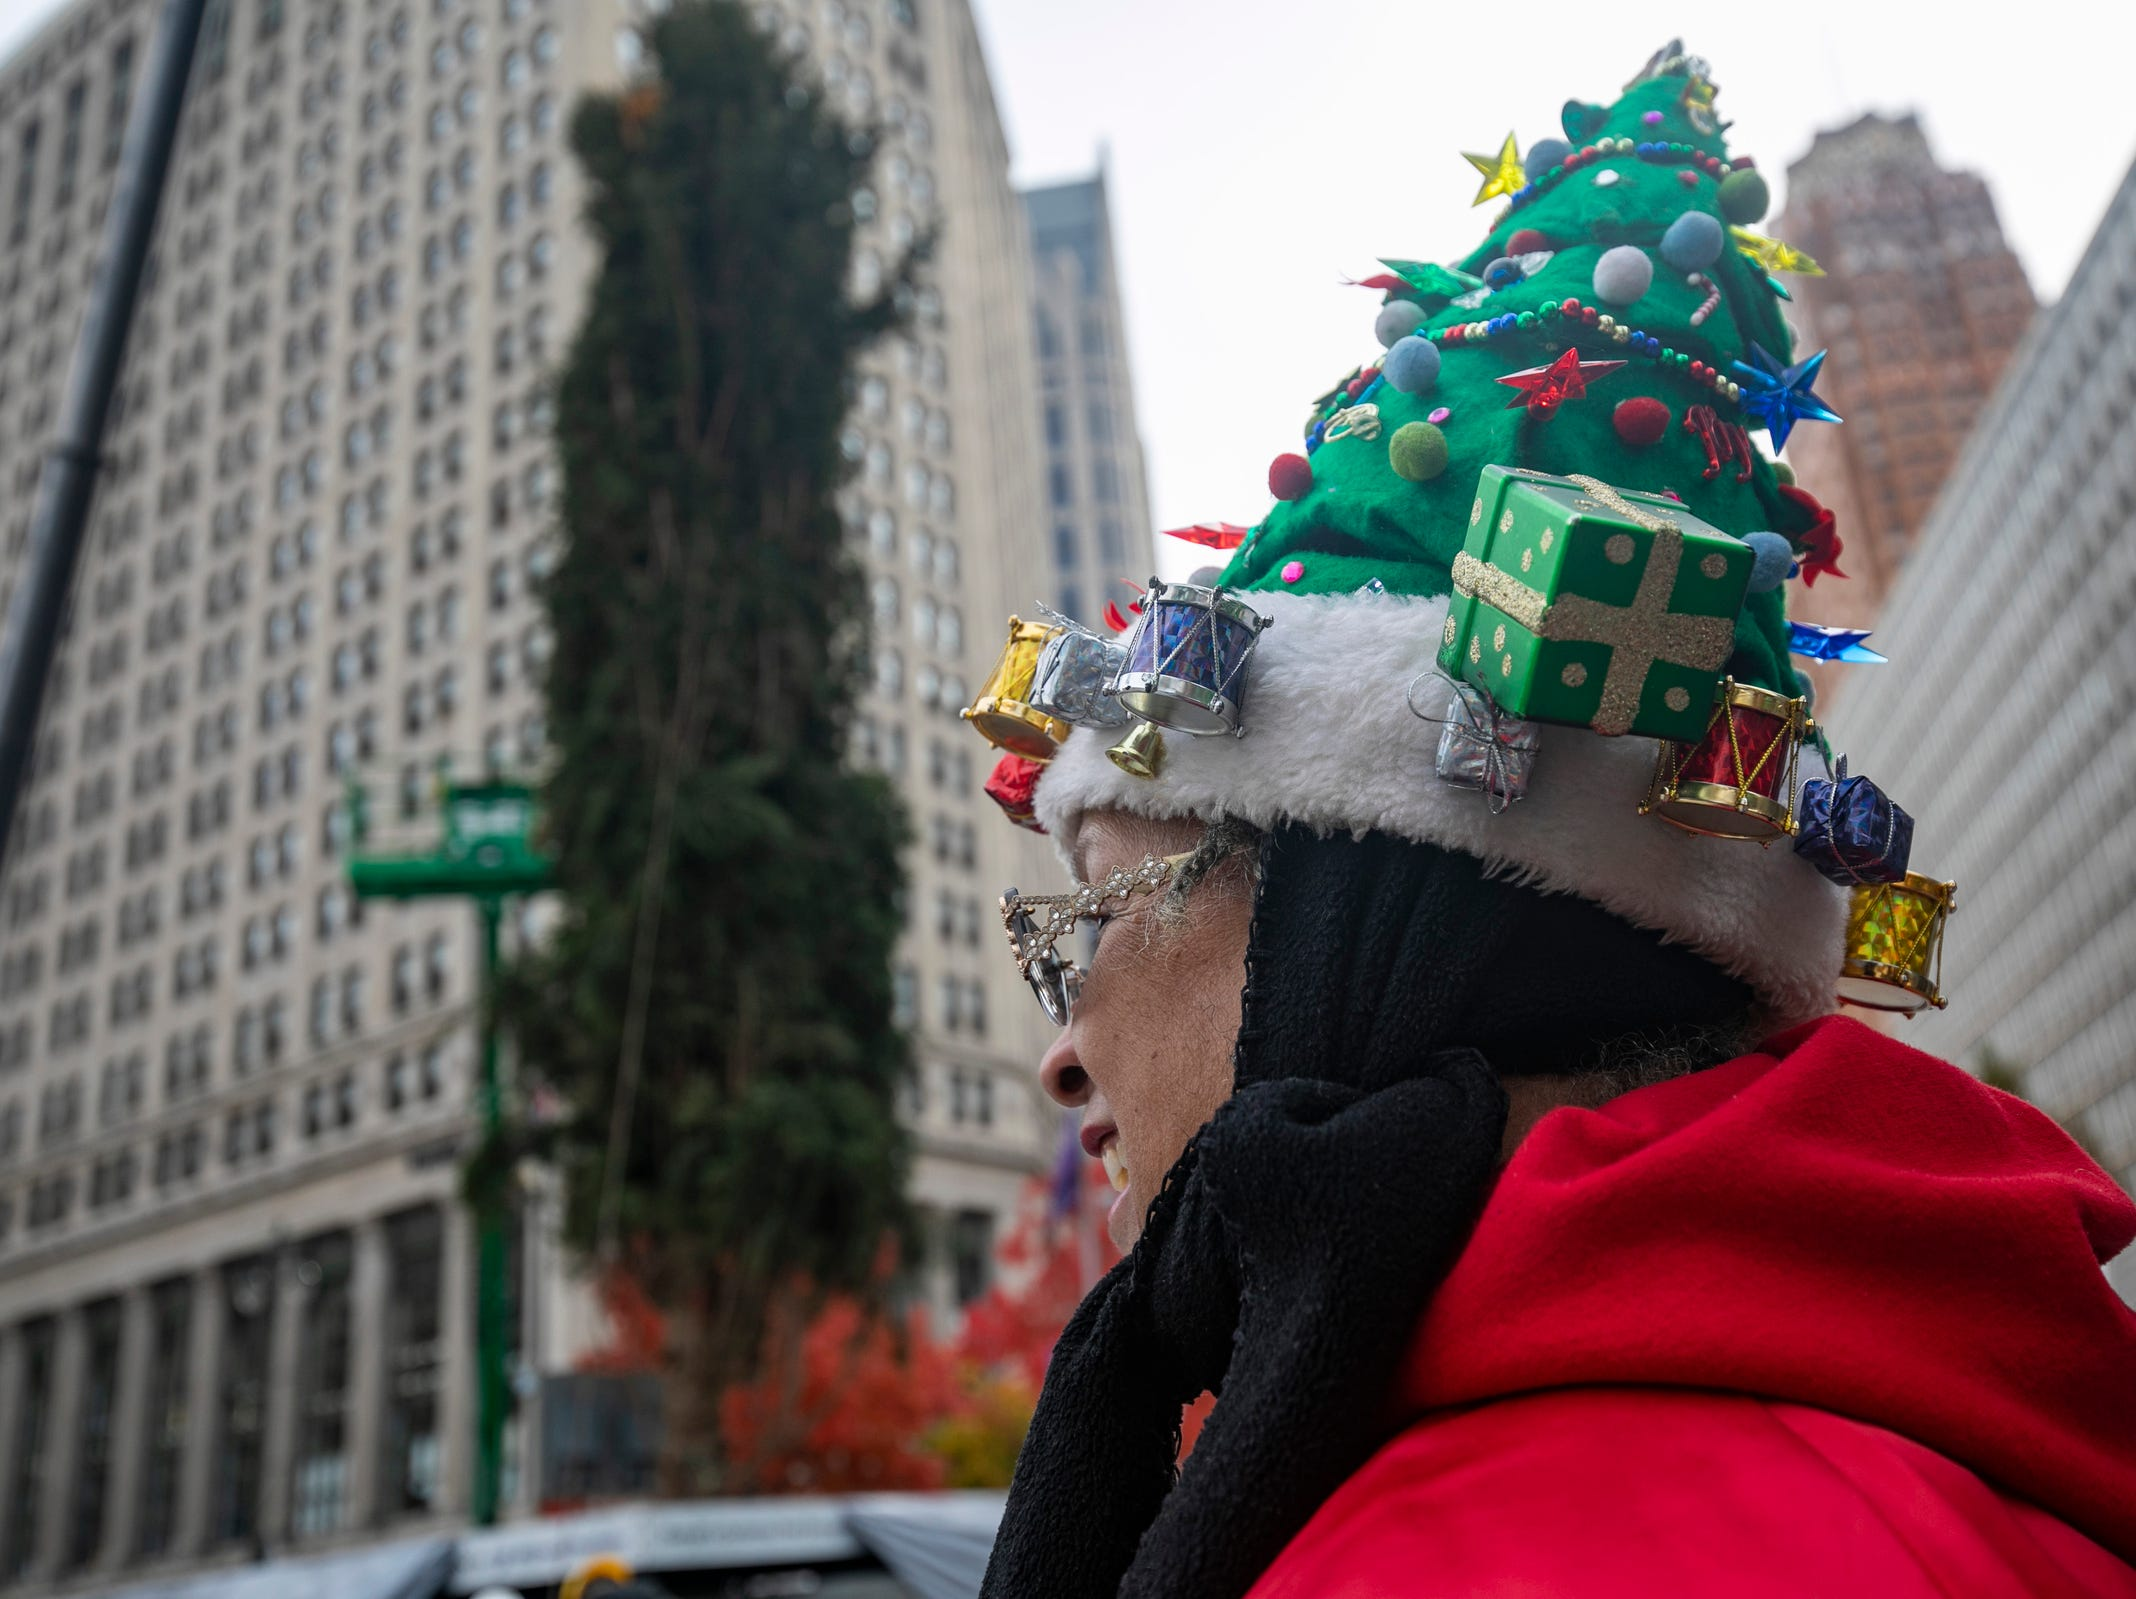 DTE retiree Amelia Sharpe, of Detroit, dons her homemade Christmas hat as workers install a 60-foot-tall Norway spruce in Campus Martius on Monday, Nov. 5, 2018.